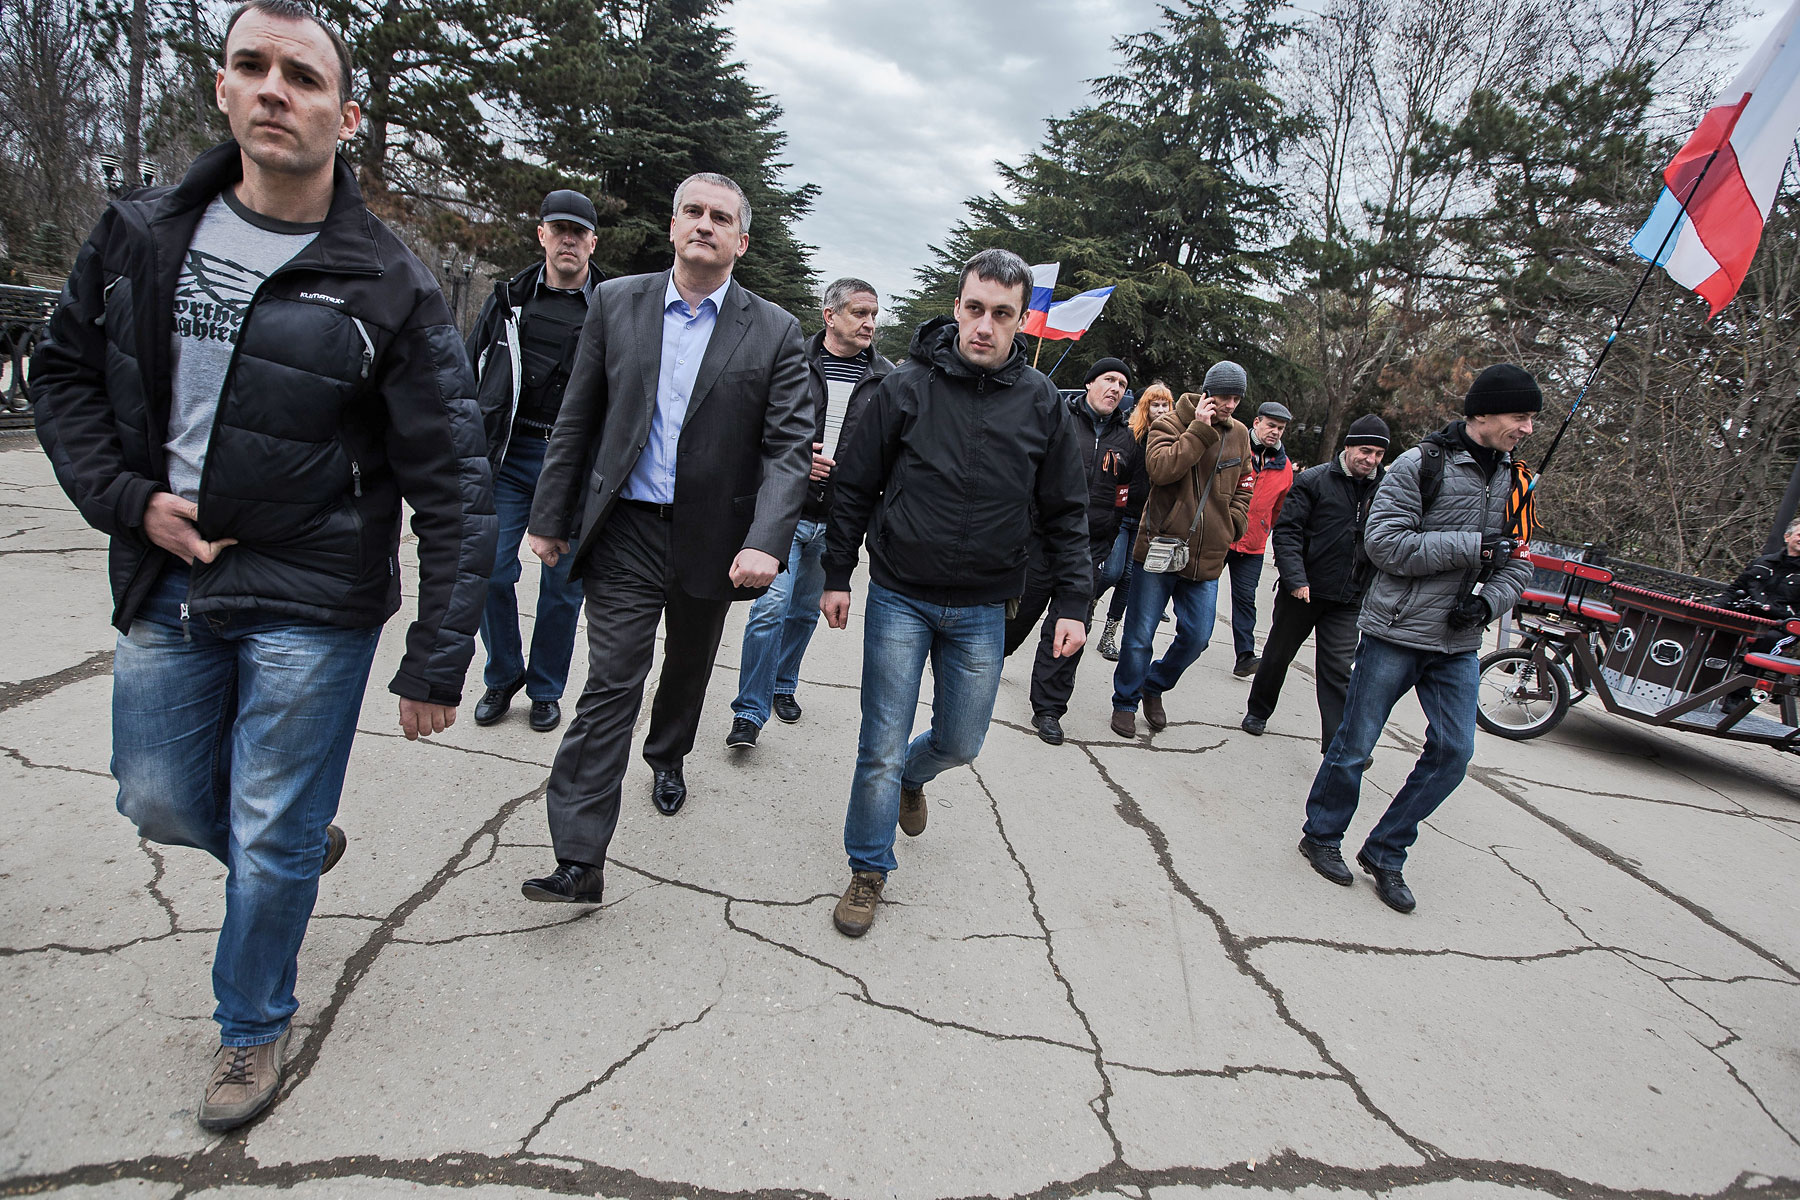 Sergei Aksyonov, the Crimean prime minister, attends a public ceremony held for the swearing-in of the first unit of the pro-Russia Military Forces of the Autonomous Republic of Crimea in Gagarin Park in Simferopol, Crimea, March 8, 2014.